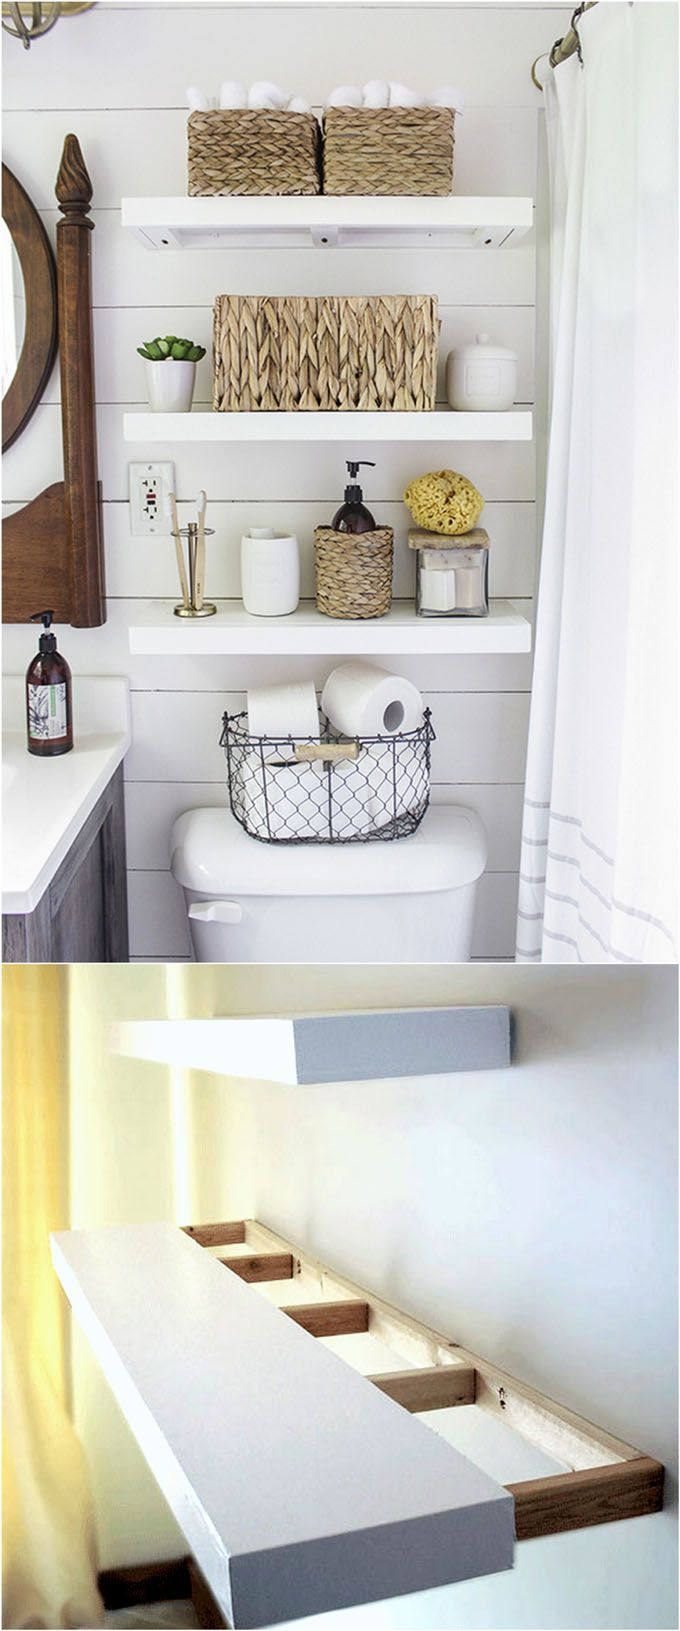 easy and stylish diy floating shelves wall hometalk bathroom tutorials building beautiful check out all the gorgeous brackets supports finishes design inspirations space between